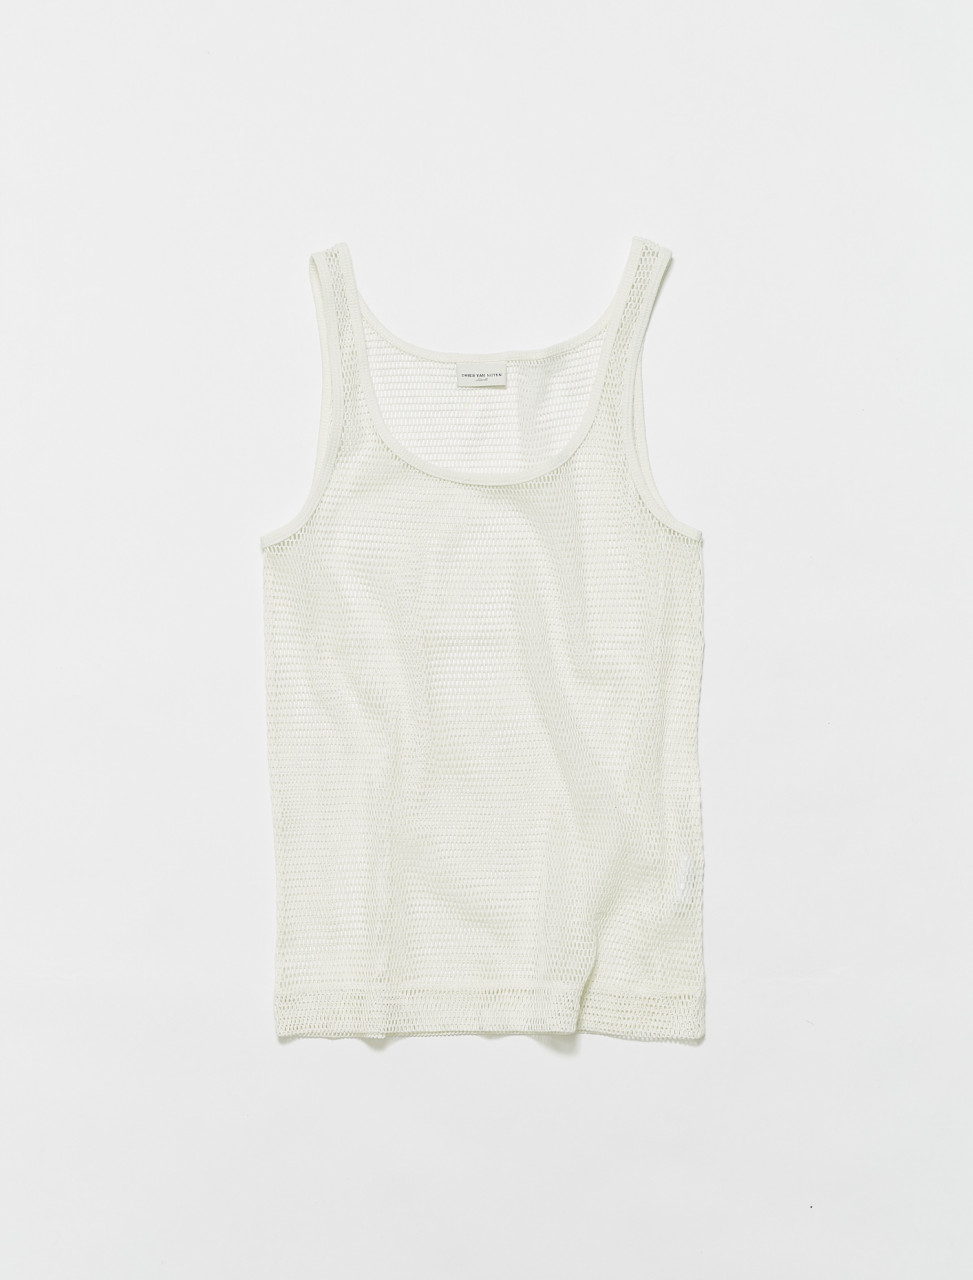 211-21127-2616-001 DRIES VAN NOTEN HALK SHEER TANK IN WHITE